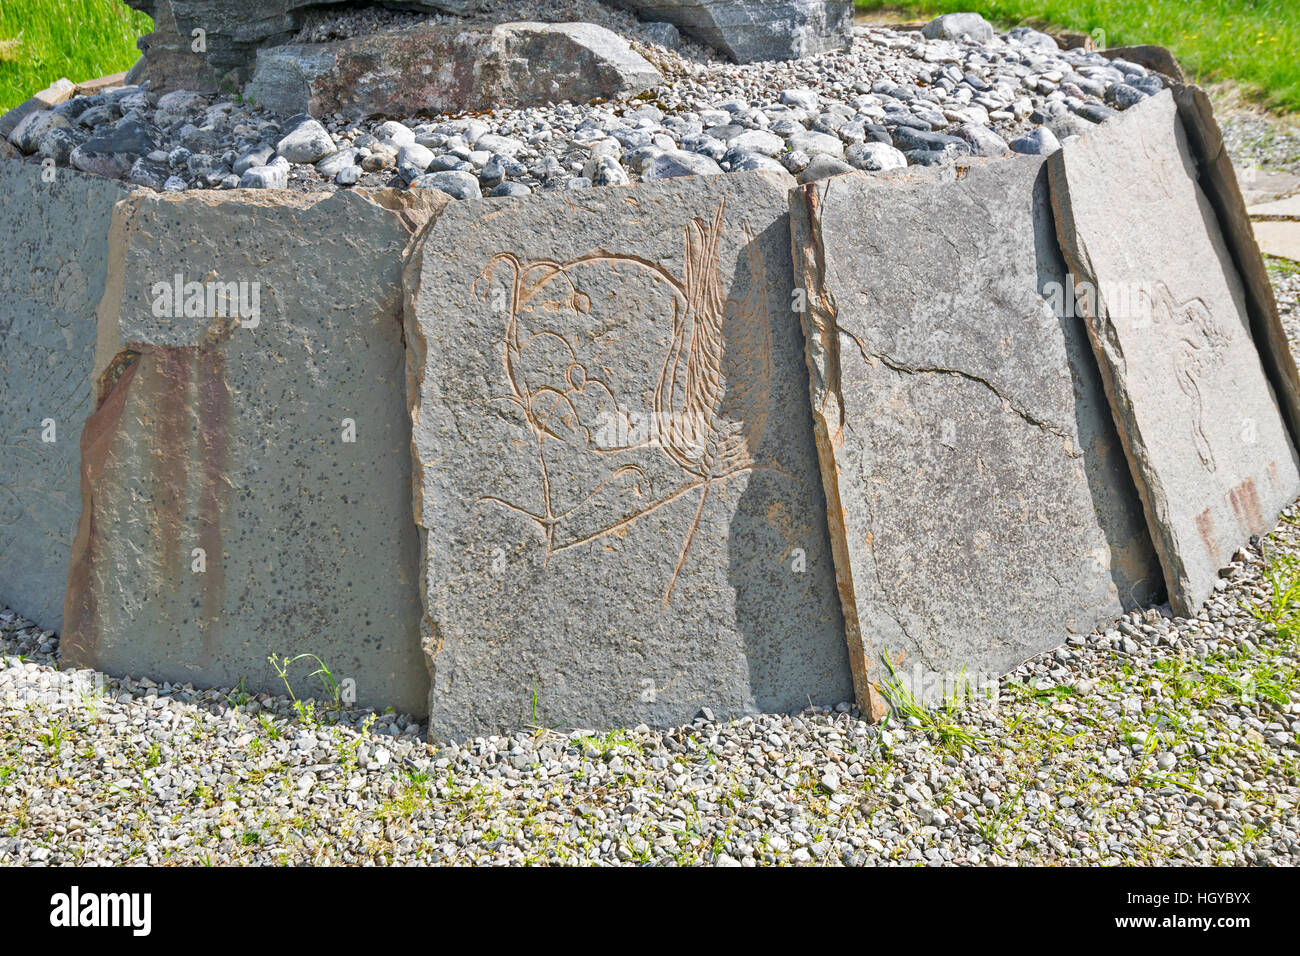 NEIL GUNN MEMORIAL STRATHPEFFER NEAR INVERNESS IN EARLY SUMMER CLOSE UP FLAGSTONES WITH CARVED PICTURES Stock Photo